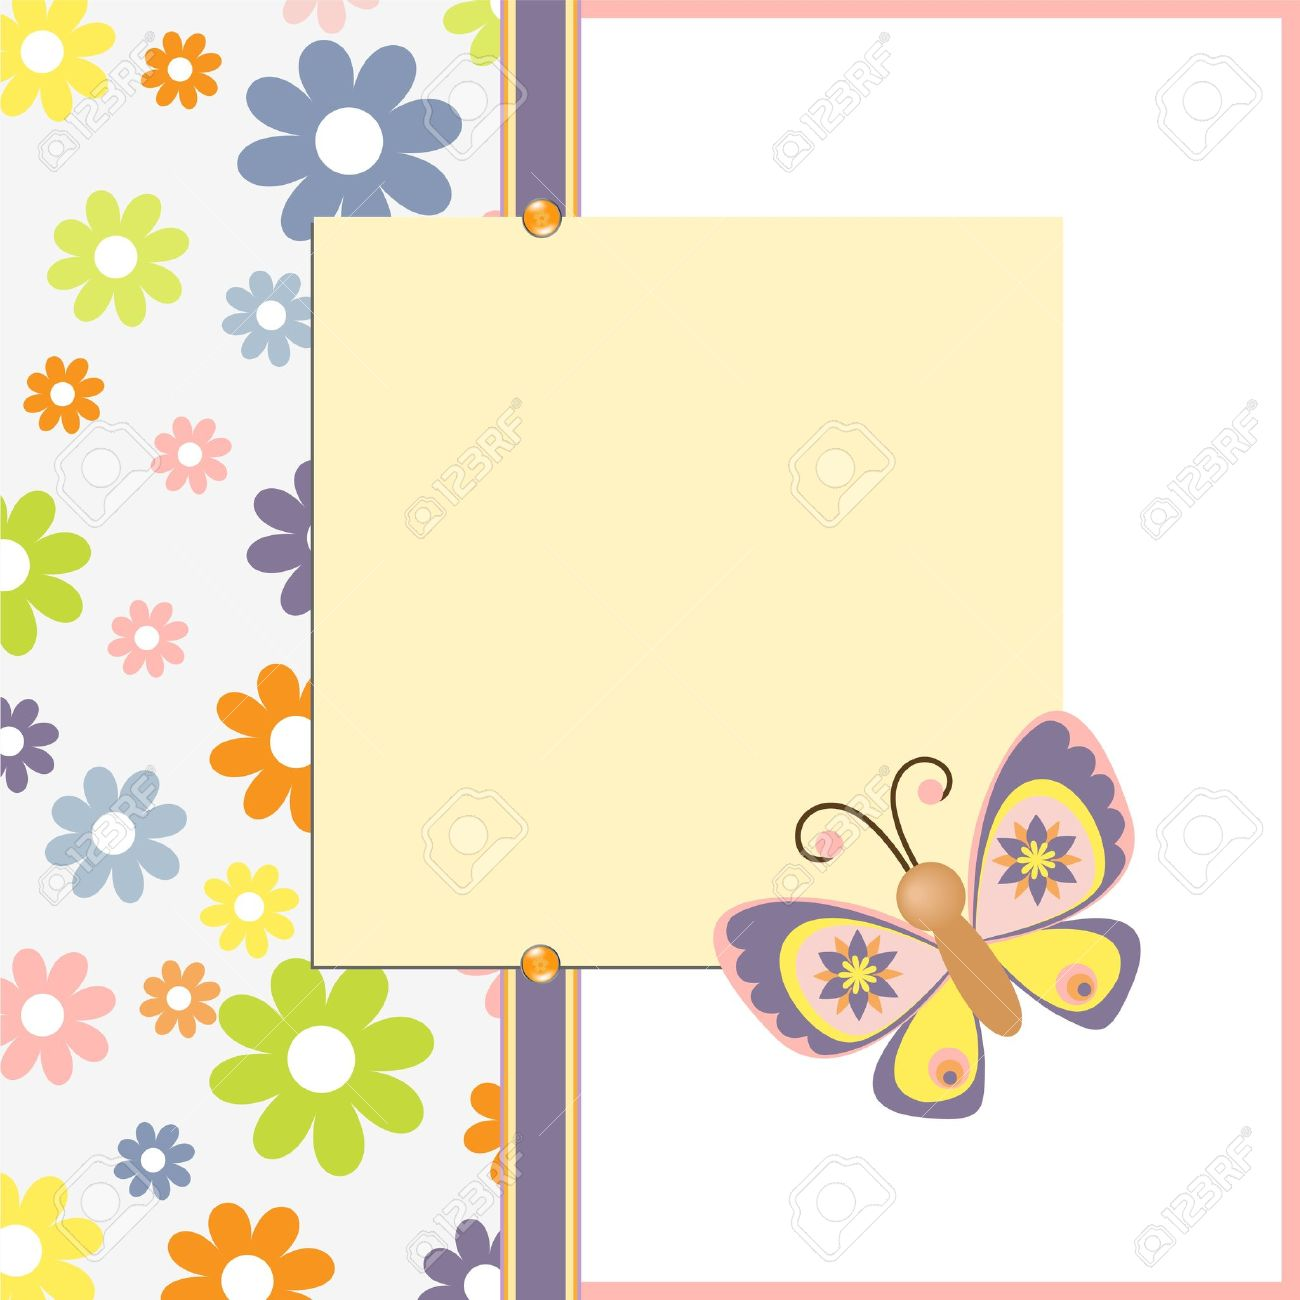 Cute Template For Easter Spring Greetings Card Royalty Free – Easter Postcard Template